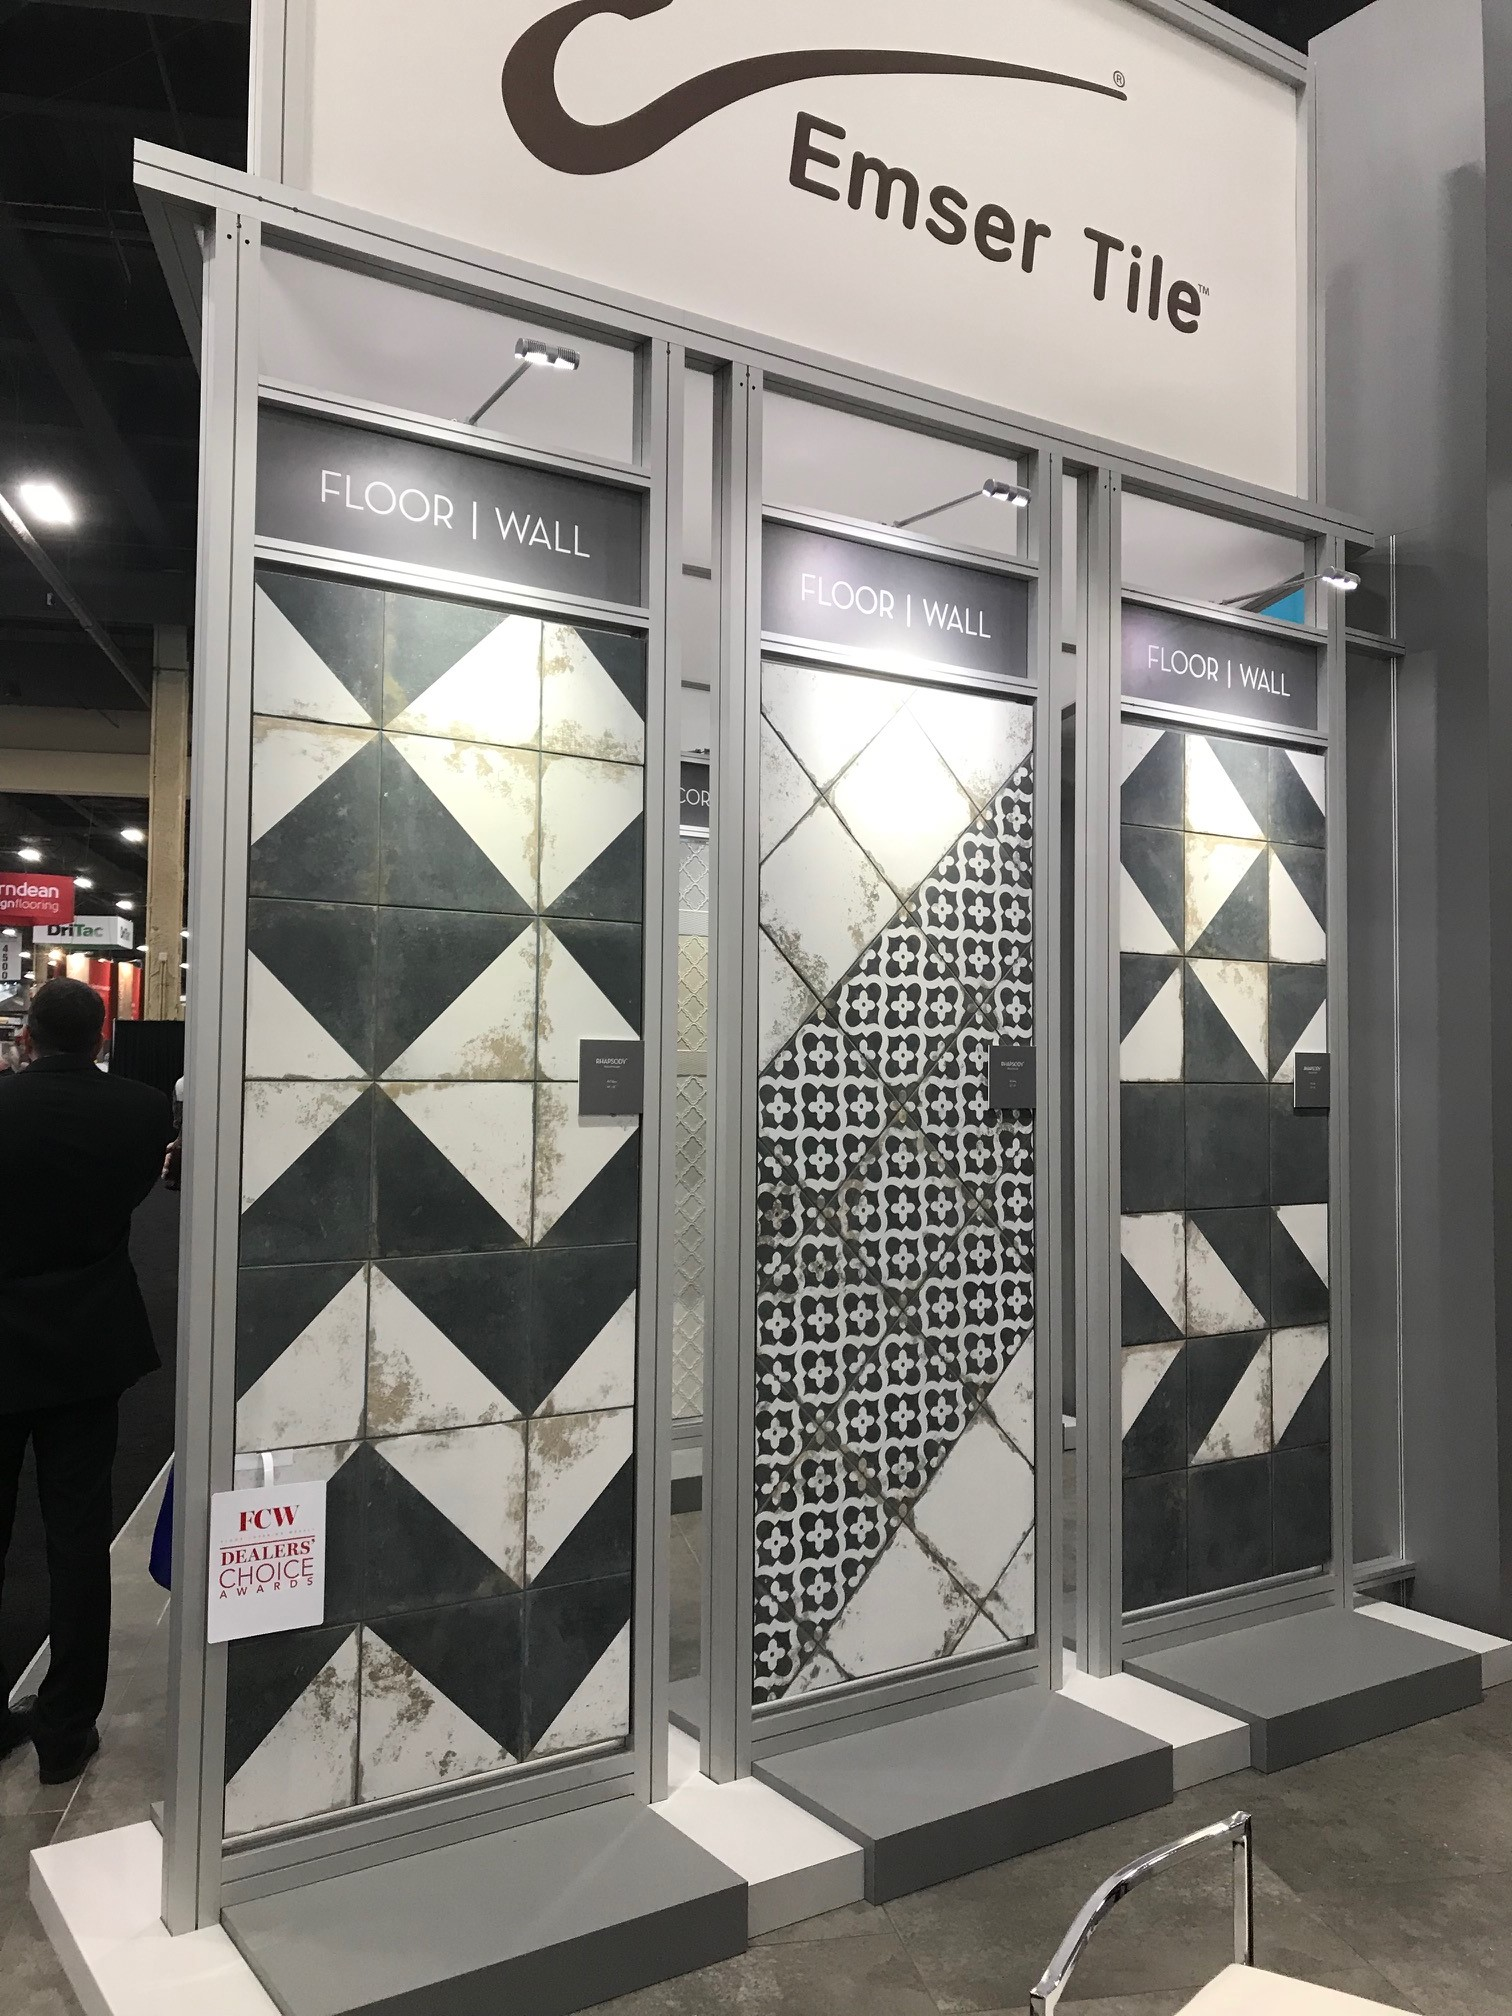 Emser Tile's showcase is the WOW factor our floors have been waiting for! Award-winning designs with new patterns and colorways is a vision in RHAPSODY. Sampling soon in our showroom.